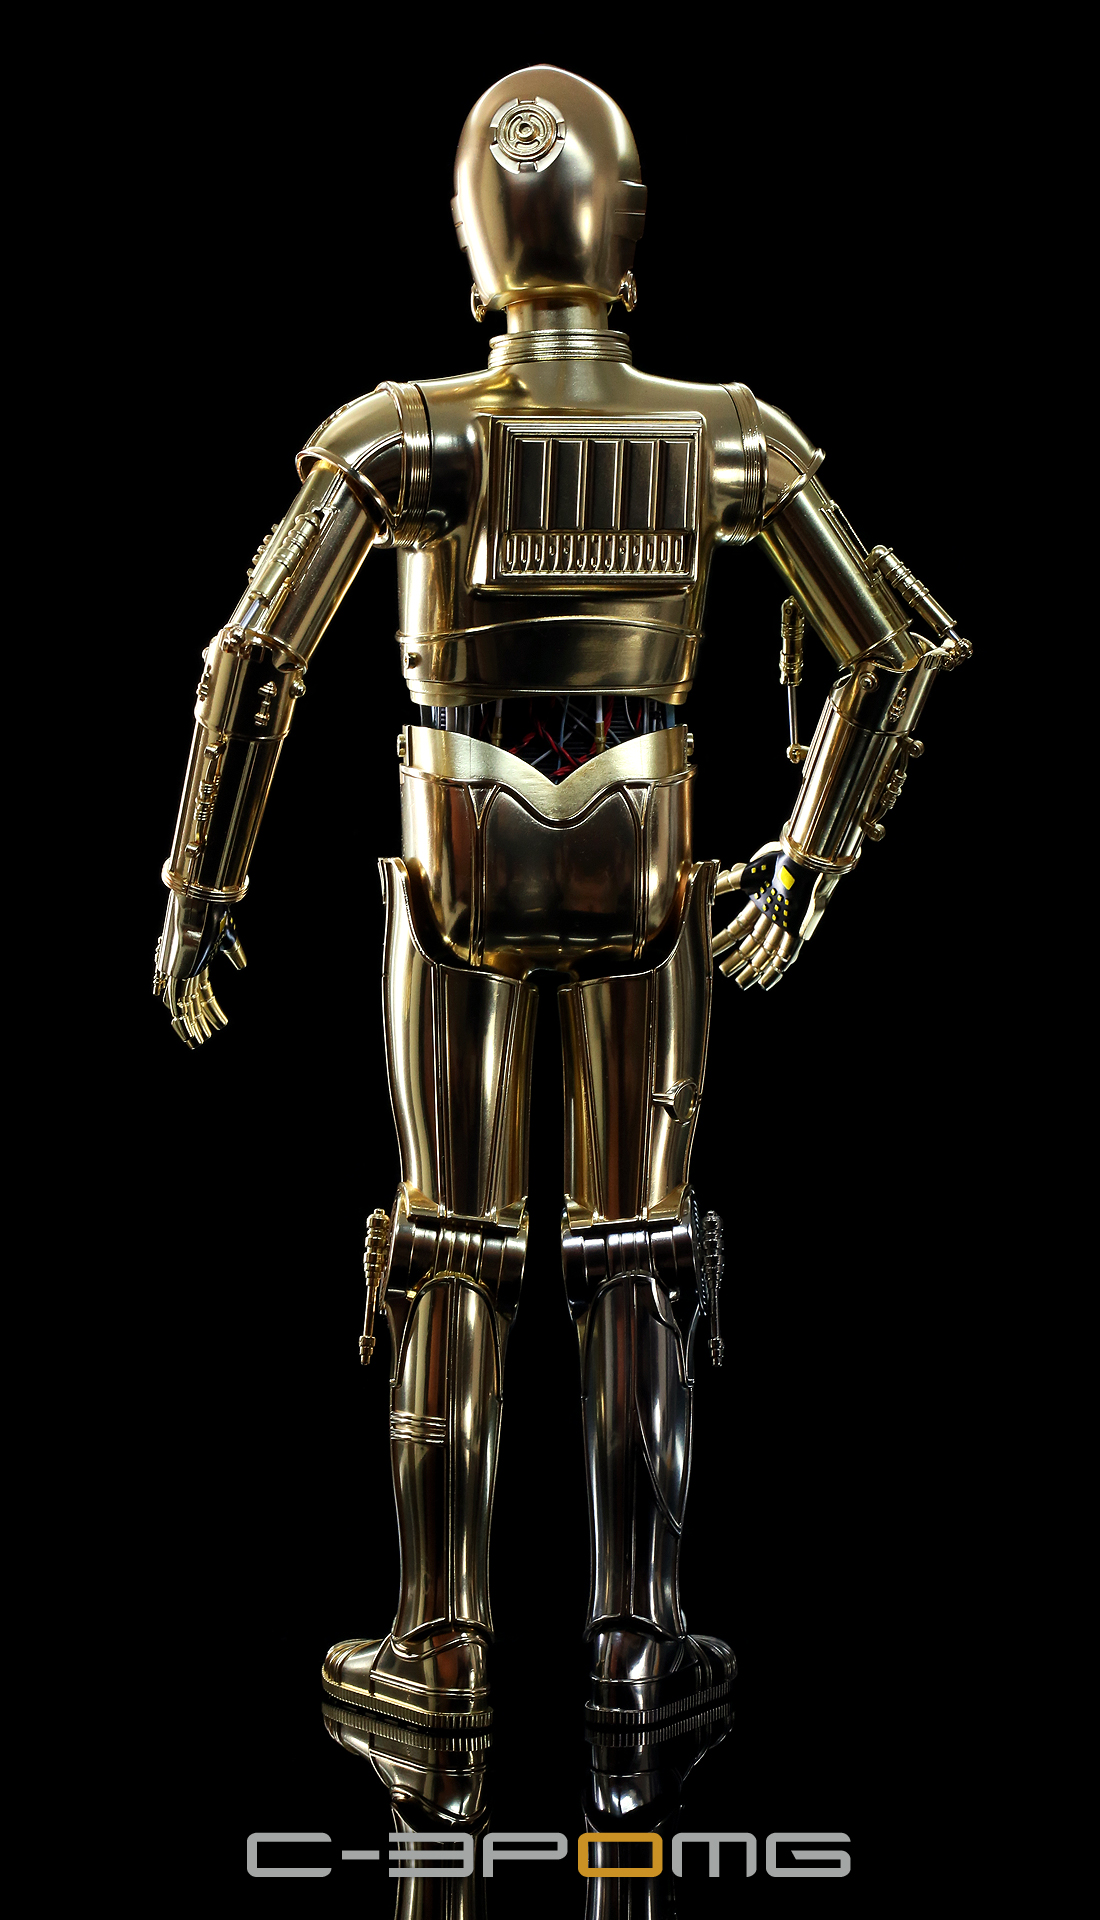 [Bandai] Star Wars: C-3PO - Perfect Model 1/6 scale - LANÇADO!!! - Página 2 C-3PO1201_zps2909509b